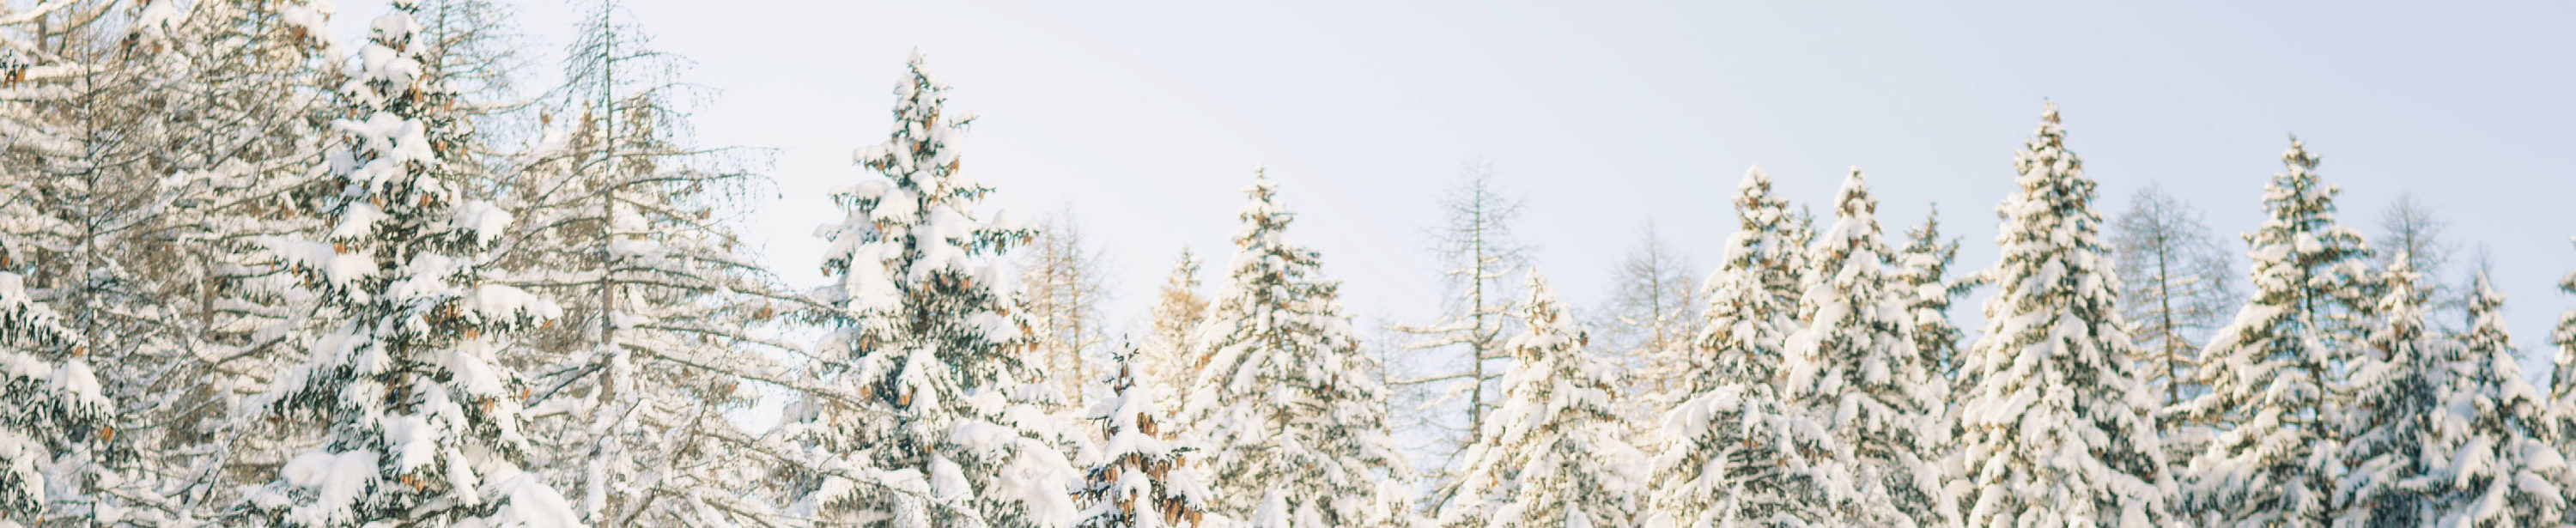 Snowy trees banner image